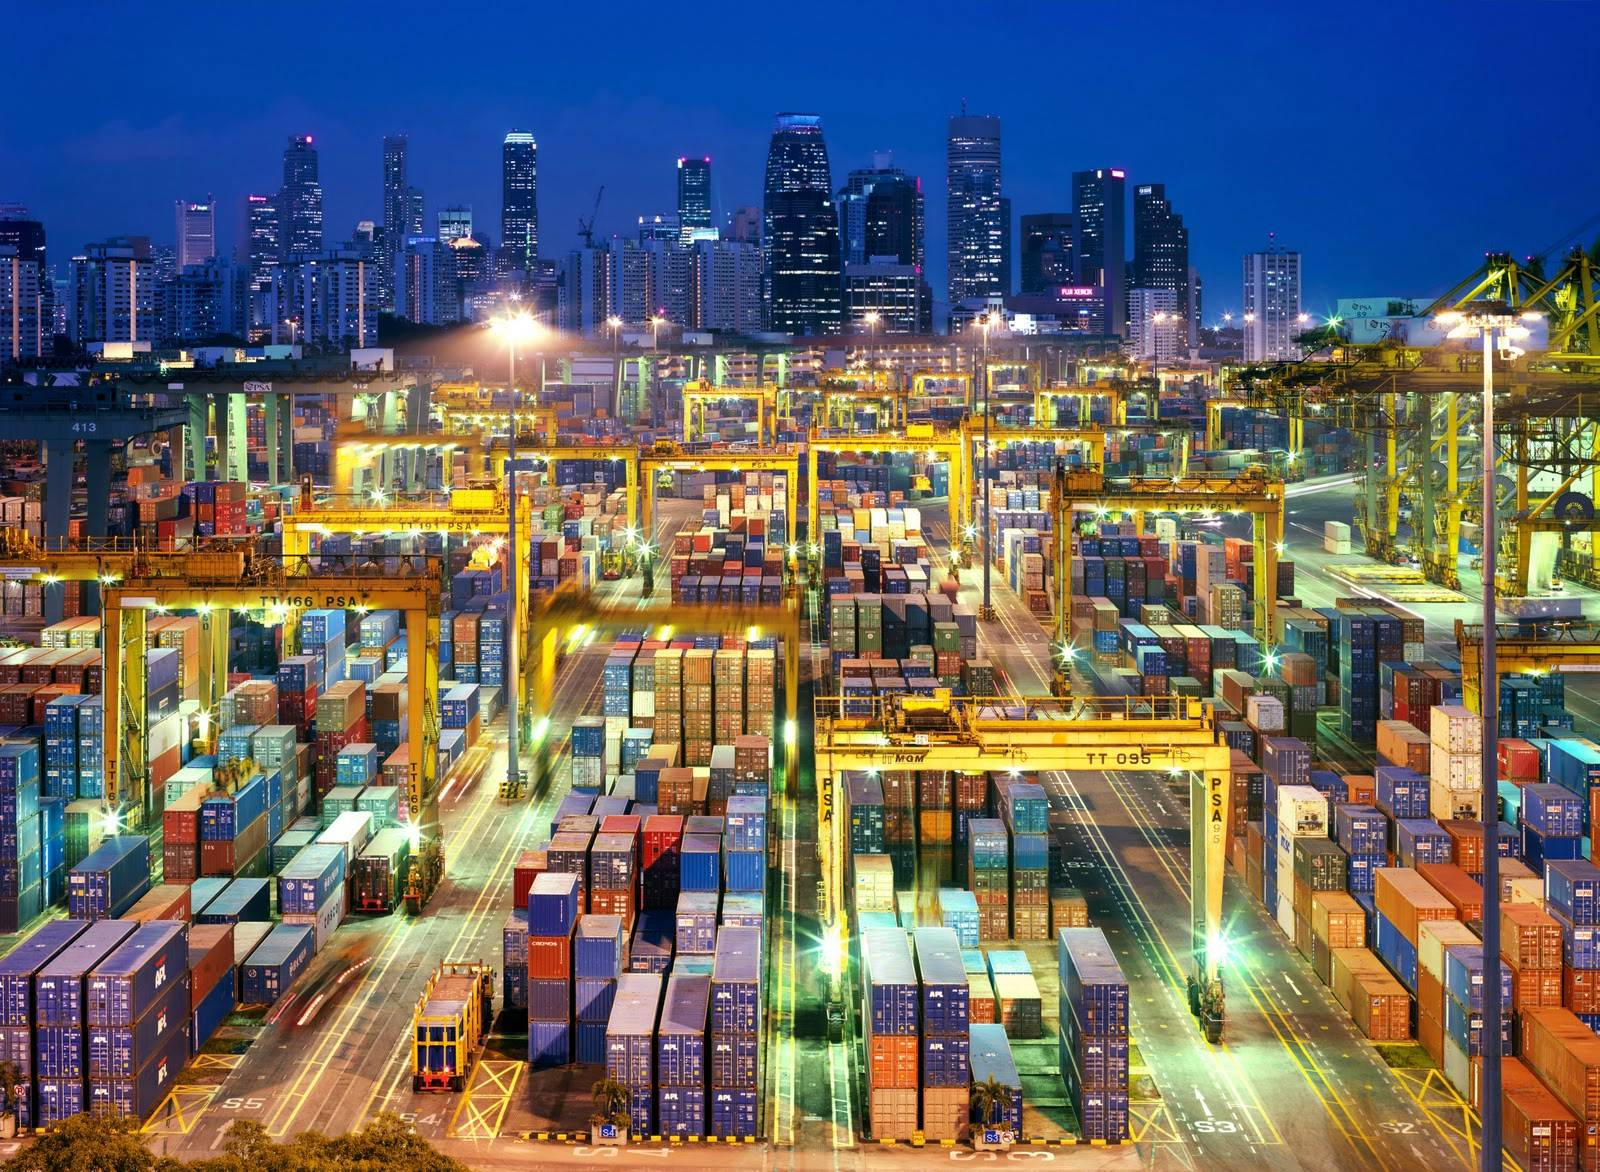 Best less than container load (LCL) service in Vietnam